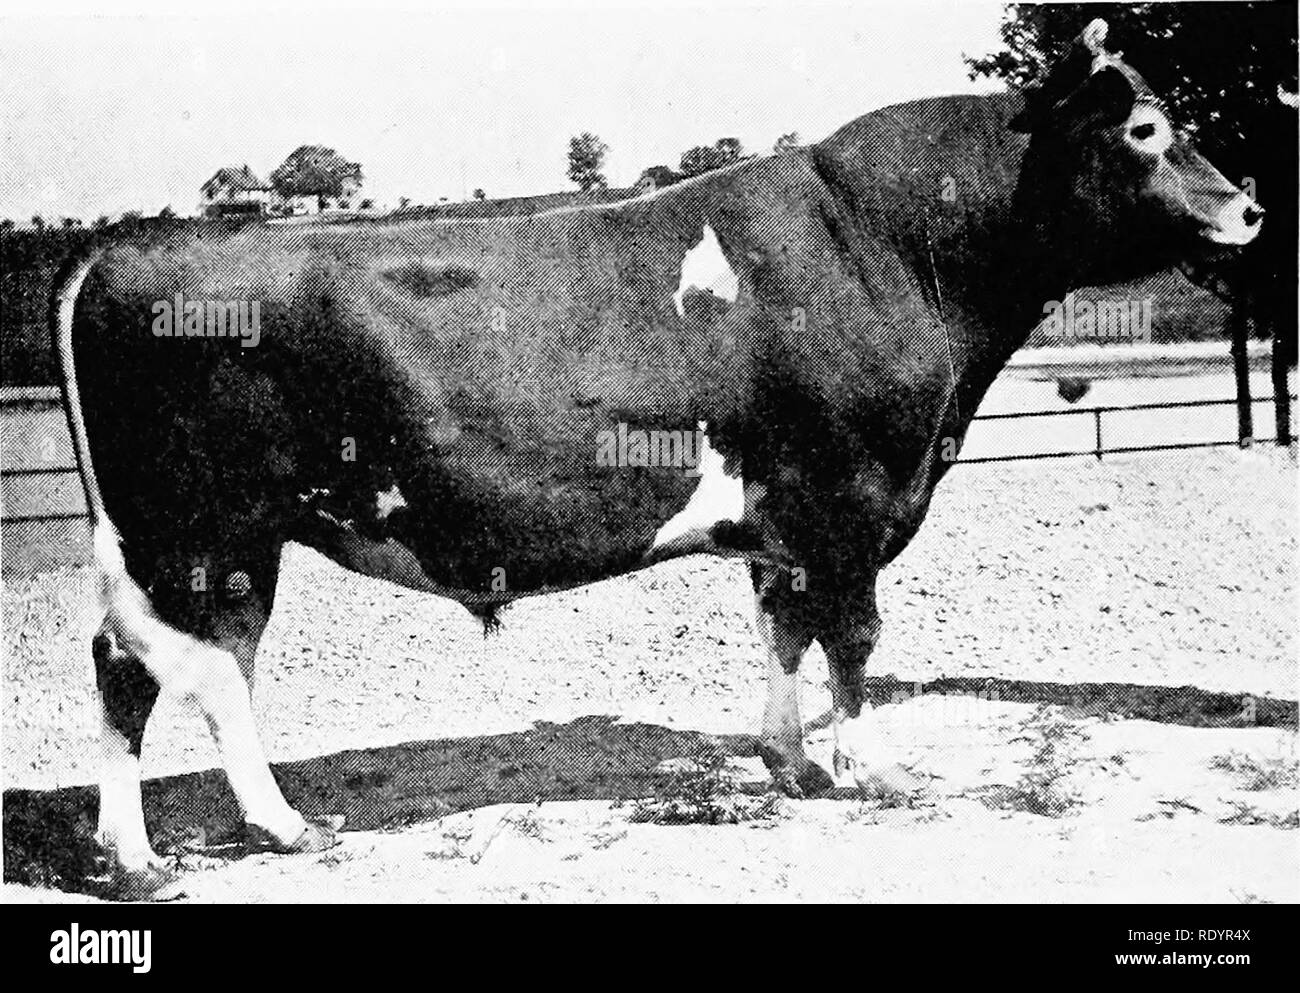 . The Guernsey breed. Guernsey cattle. 374 The Guernsey Breed Blue Belle of Norwood II 27462, A. R. 2469, D 508.51 King's Maud Chene 34700, A. R. 3604, E 319-48 Corinna's King 10432, A. R. Cora°Munroe 27459, A. R. 2229, E. . ..._.. â â â 319,94 Stella of Belle Vernon II 25990, A. R. 22/9, U 398.93 (lllie's King of Belle Vernon II 14028, A. R. Efcab'eth Belle 31190, A. R. 2231, H. 402.39 Elizabeth Belle 31190, A. R. 2231, D. (re-entry) 642.34. Ollie's King of Belle Vernon 2d 14028, A. R. Kathleen Cnttie II's Daughter 33305, A. R. 2285, G... 274.82 Corinna White V 33016, A. R. 2448, G 488.46 Co - Stock Image